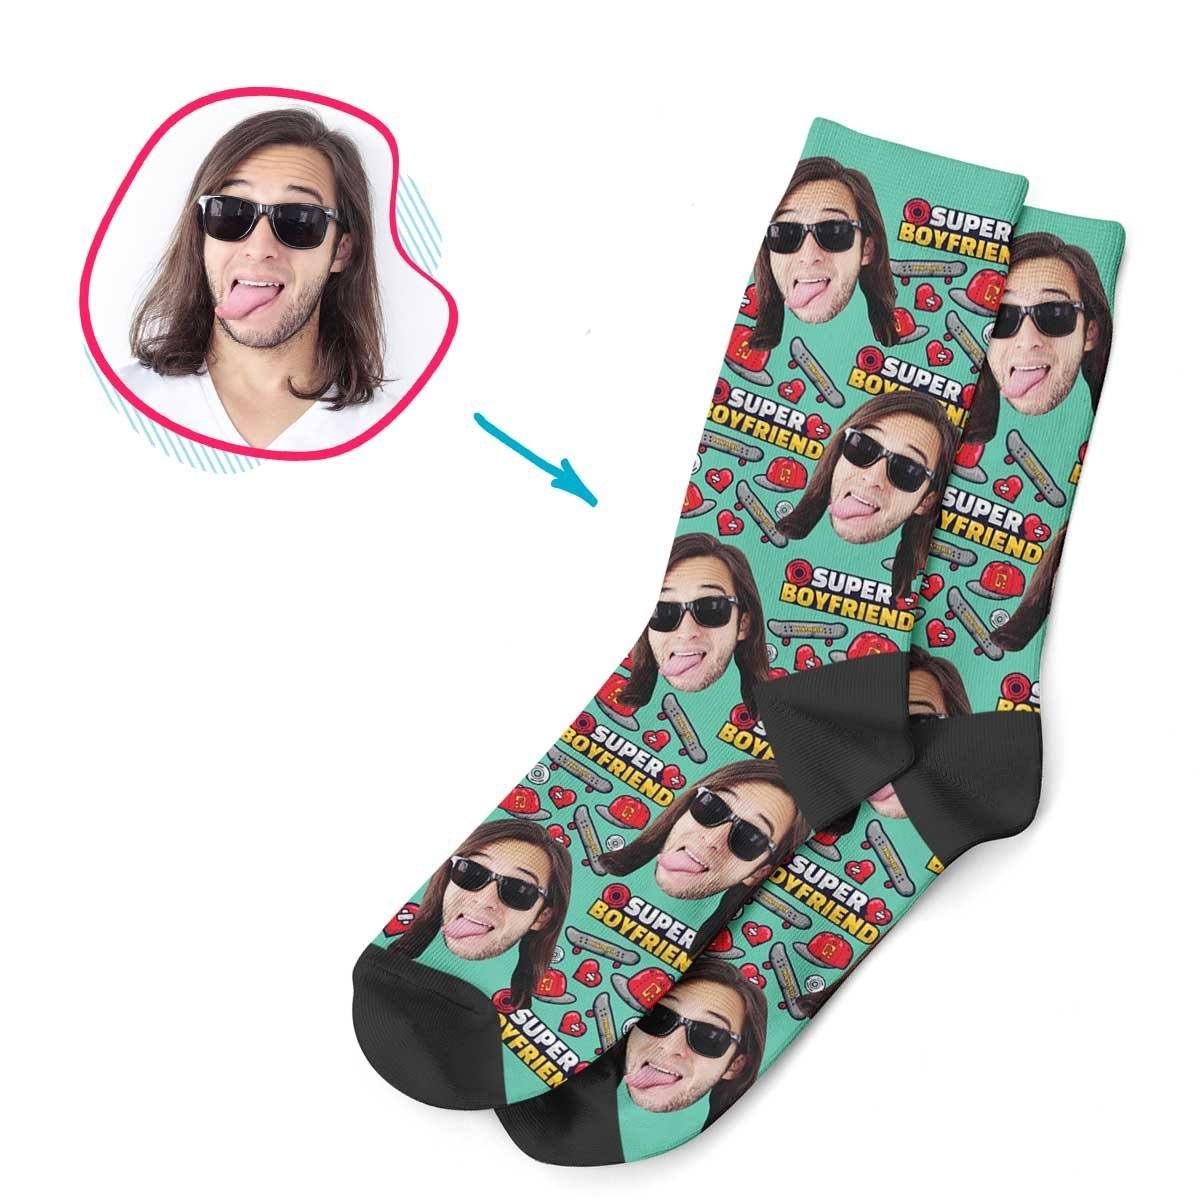 Mint Boyfriend personalized socks with photo of face printed on them